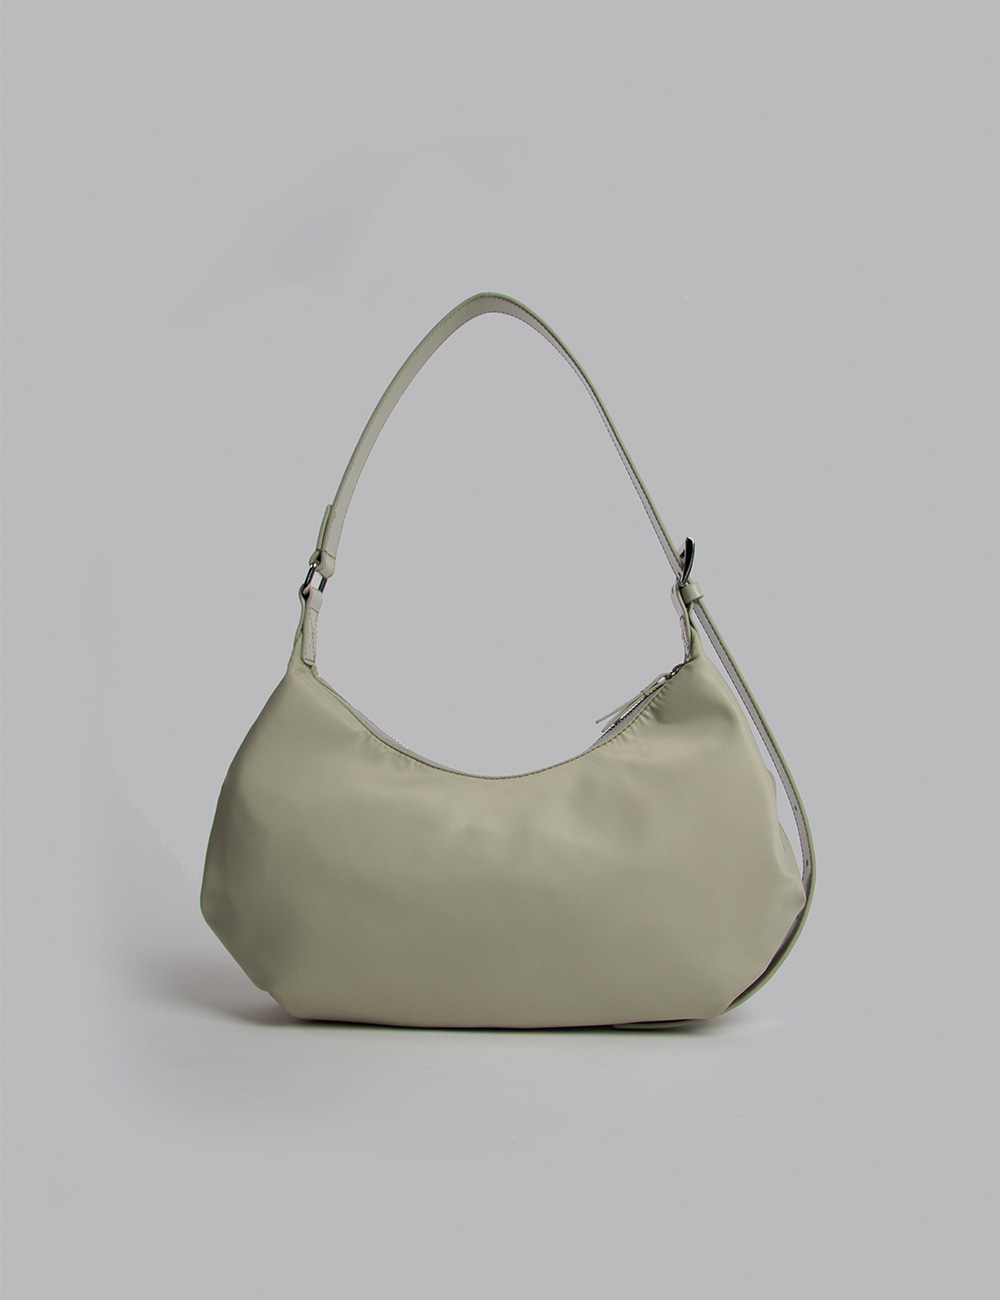 MAISON246,[21'ss 246 신상 가방]246 ILLY BAG_MINT,No.246